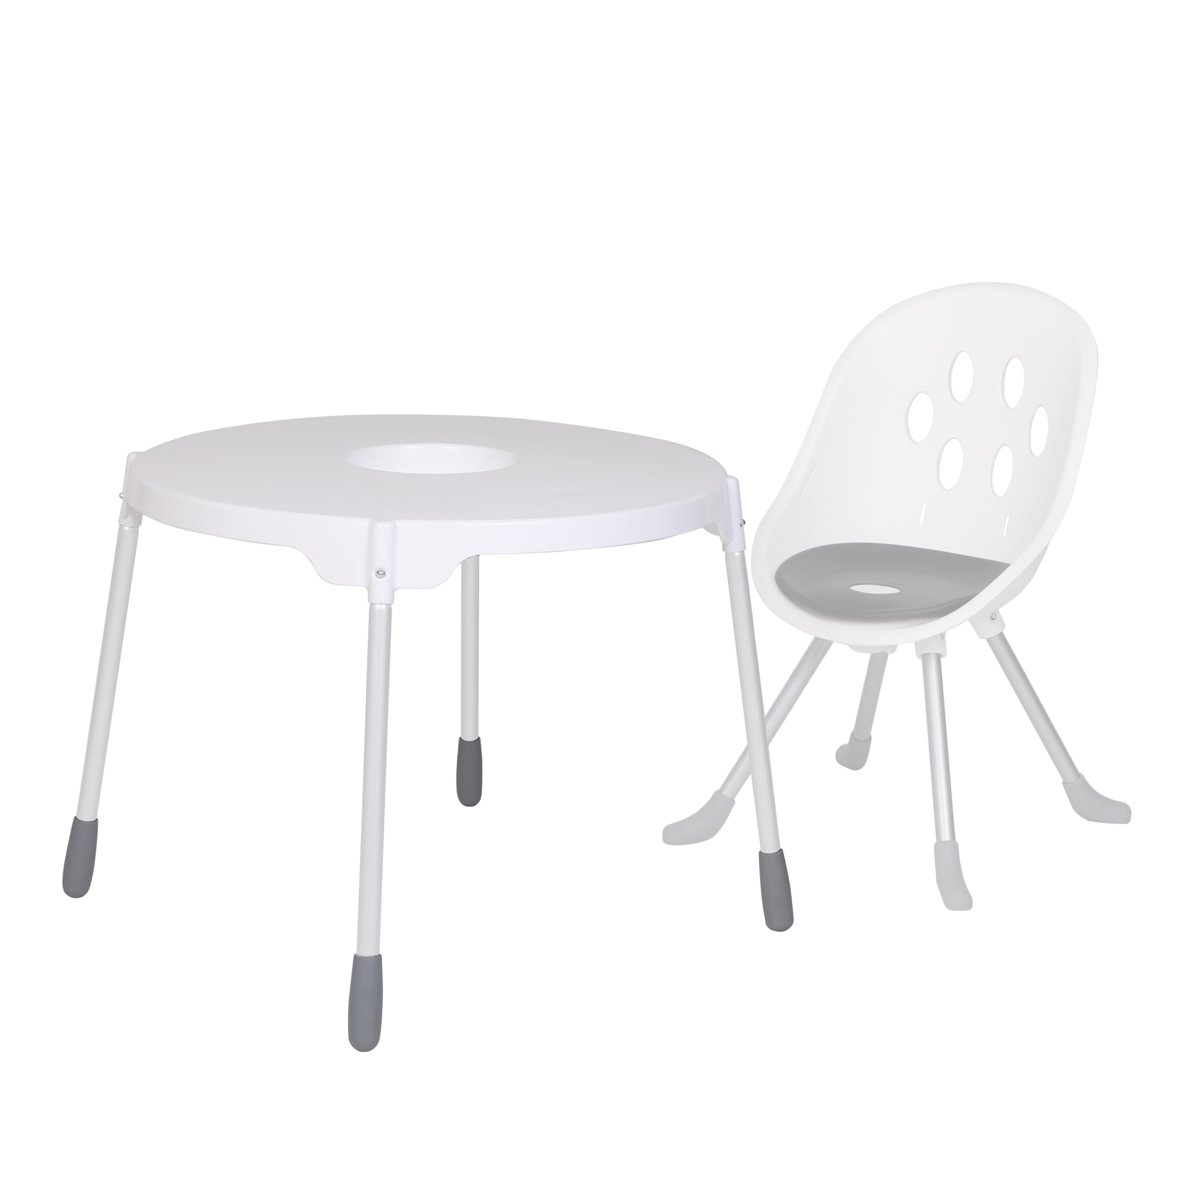 https://cdn.accentuate.io/4675449454688/19440099492024/phil_and_teds_poppy_table_top_with_leg_set_and_poppy_high_chair_1-v1630984550316.jpg?1200x1200